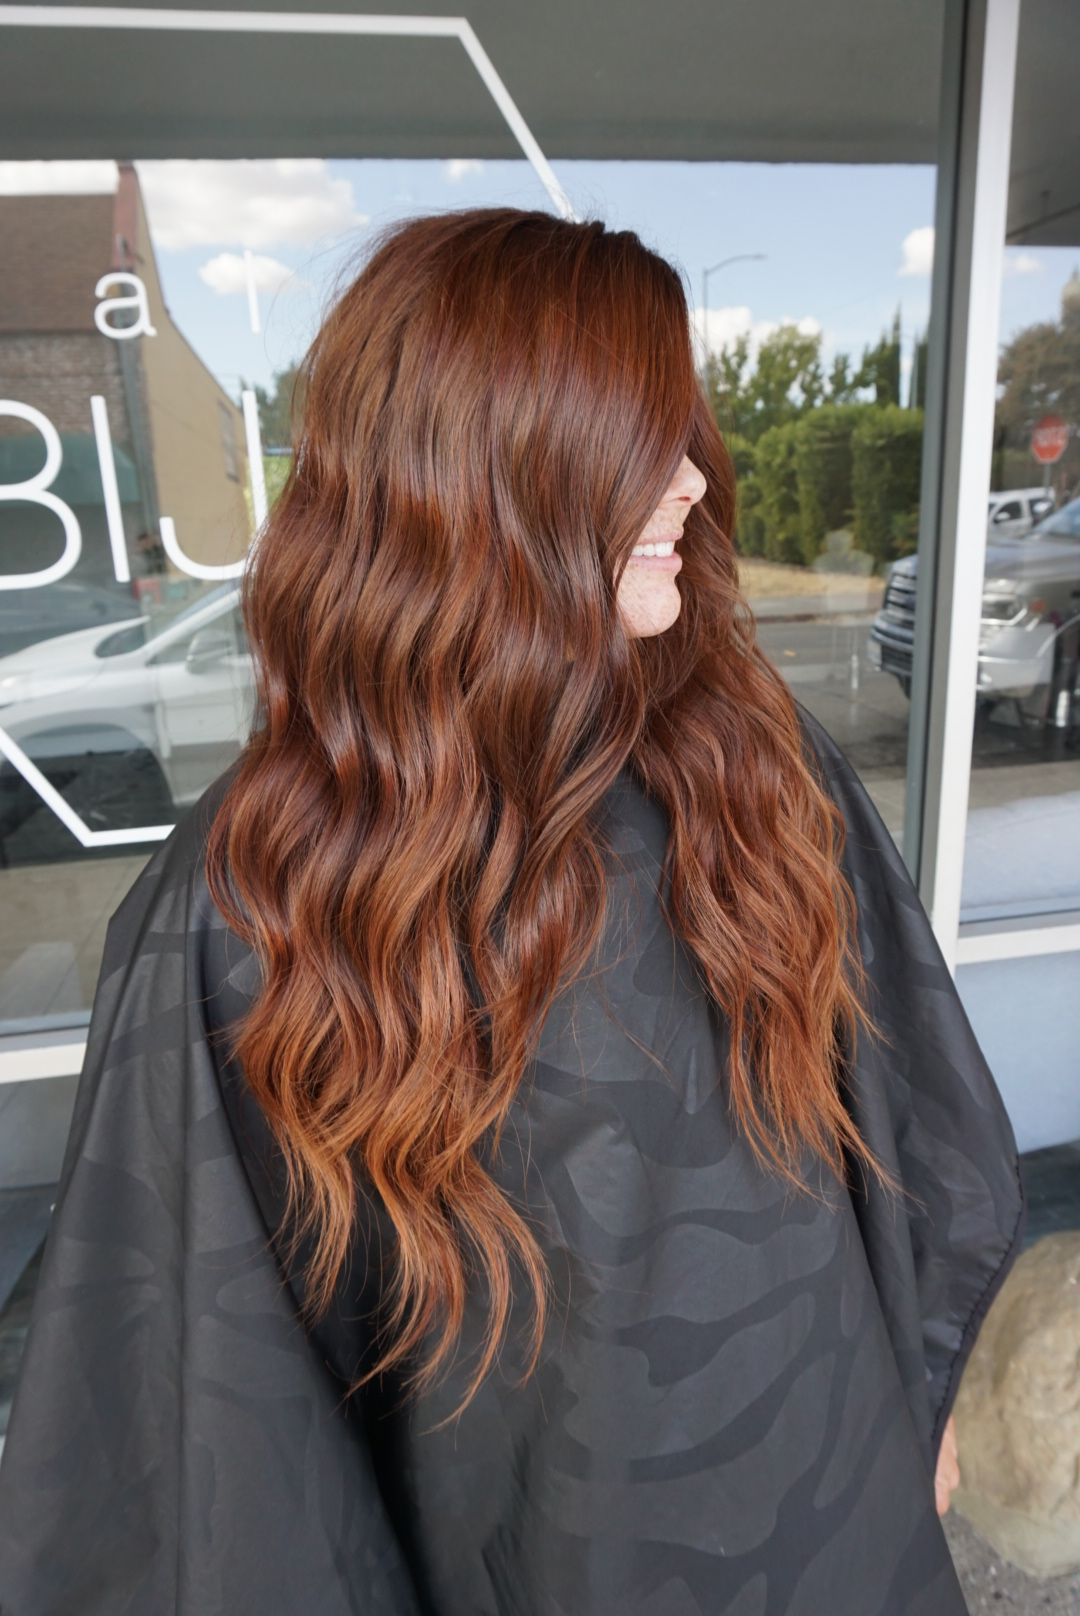 Fall hair color NBR extensions